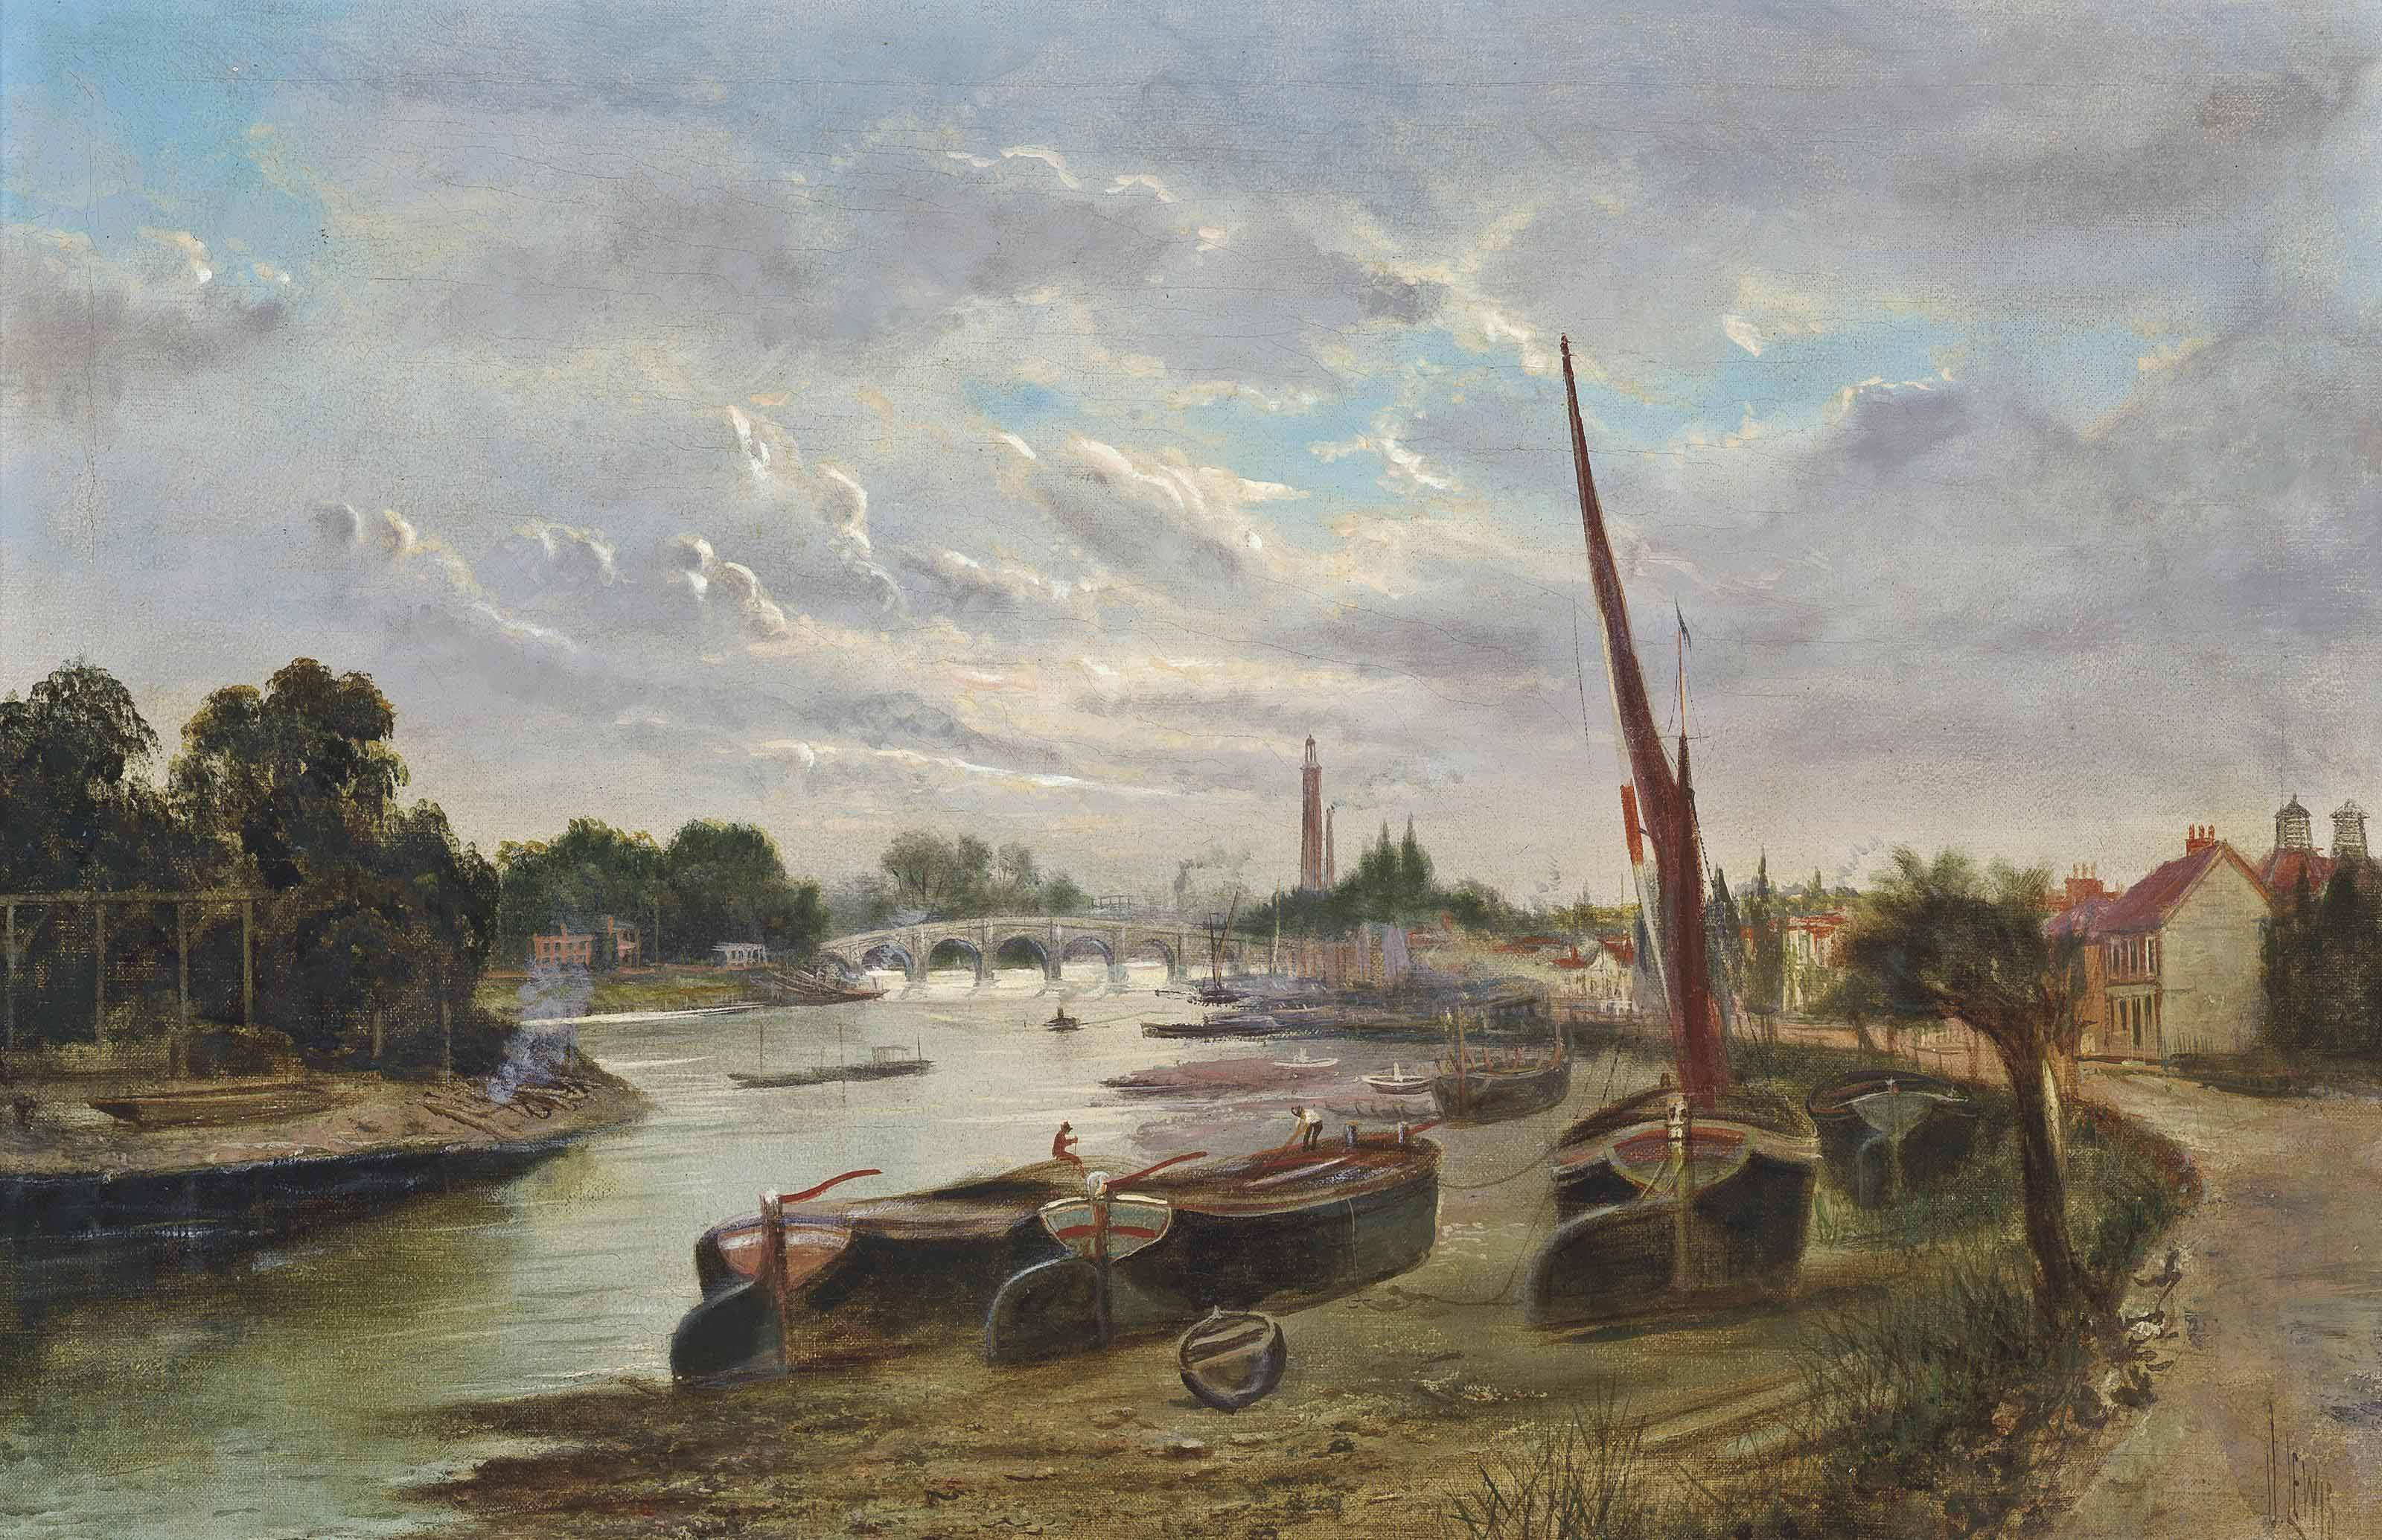 Low tide at Strand-on-the-Green, before Oliver's Island and Kew Bridge